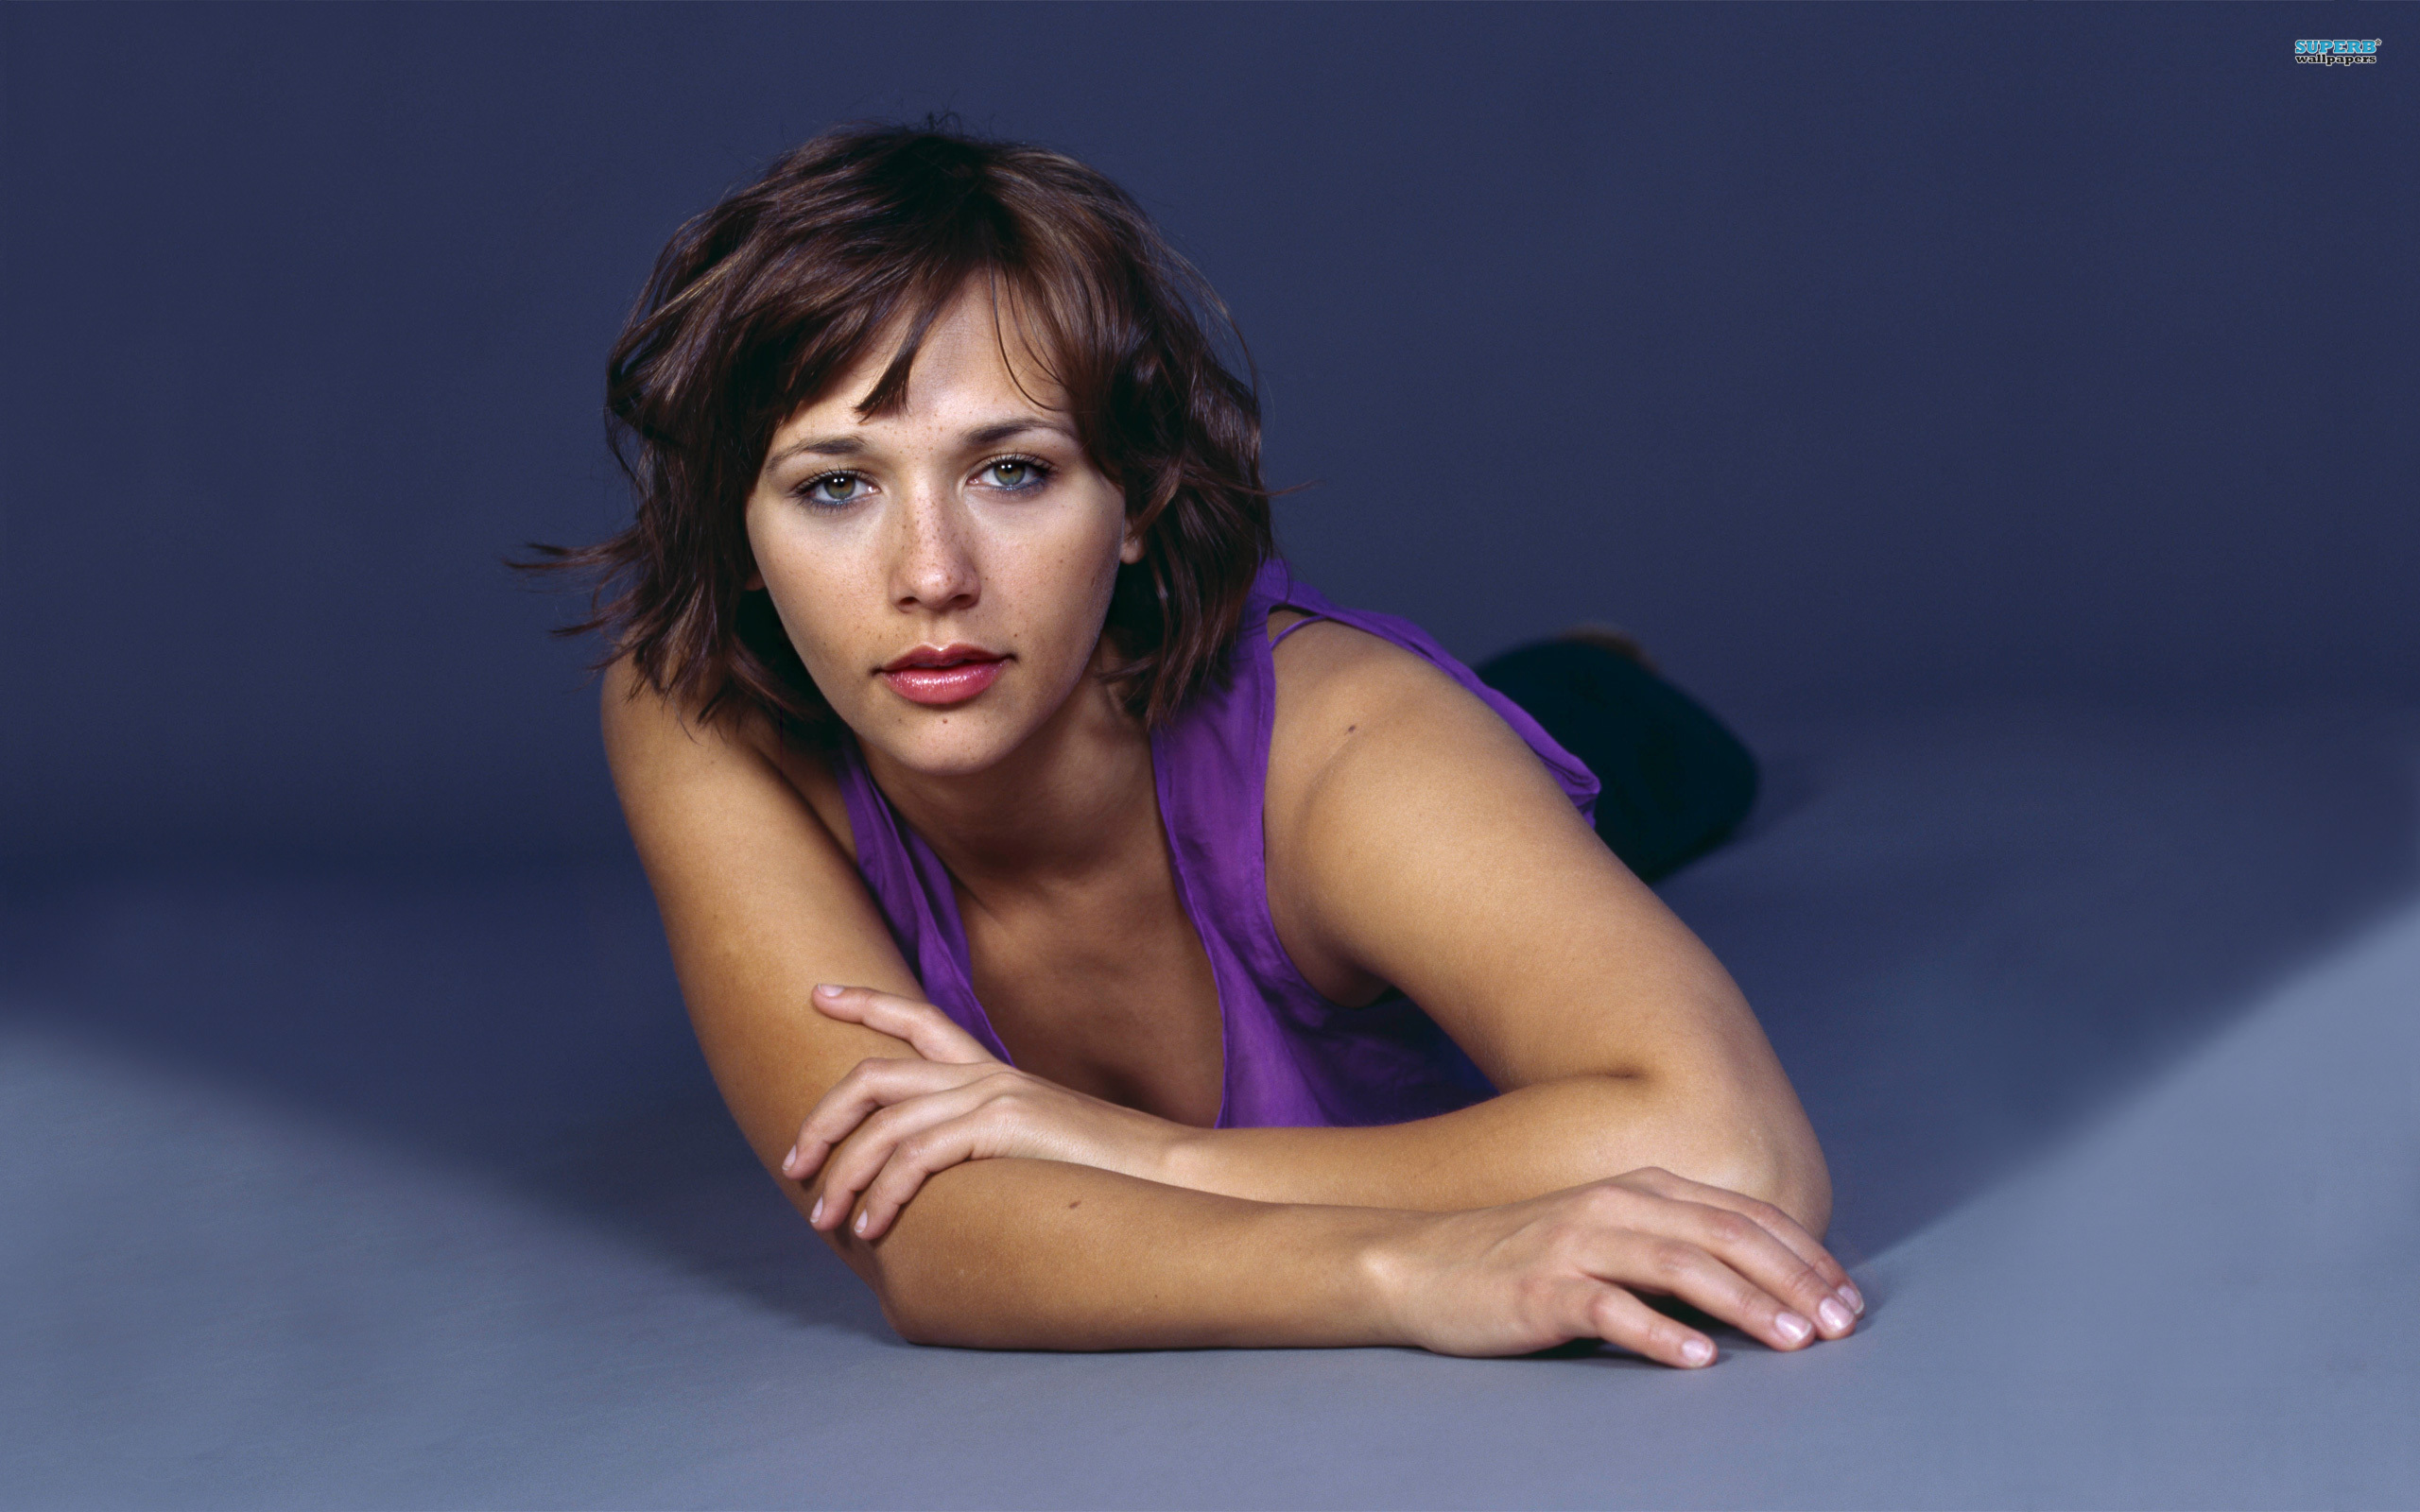 Rashida Jones wallpaper 2560x1600 jpg